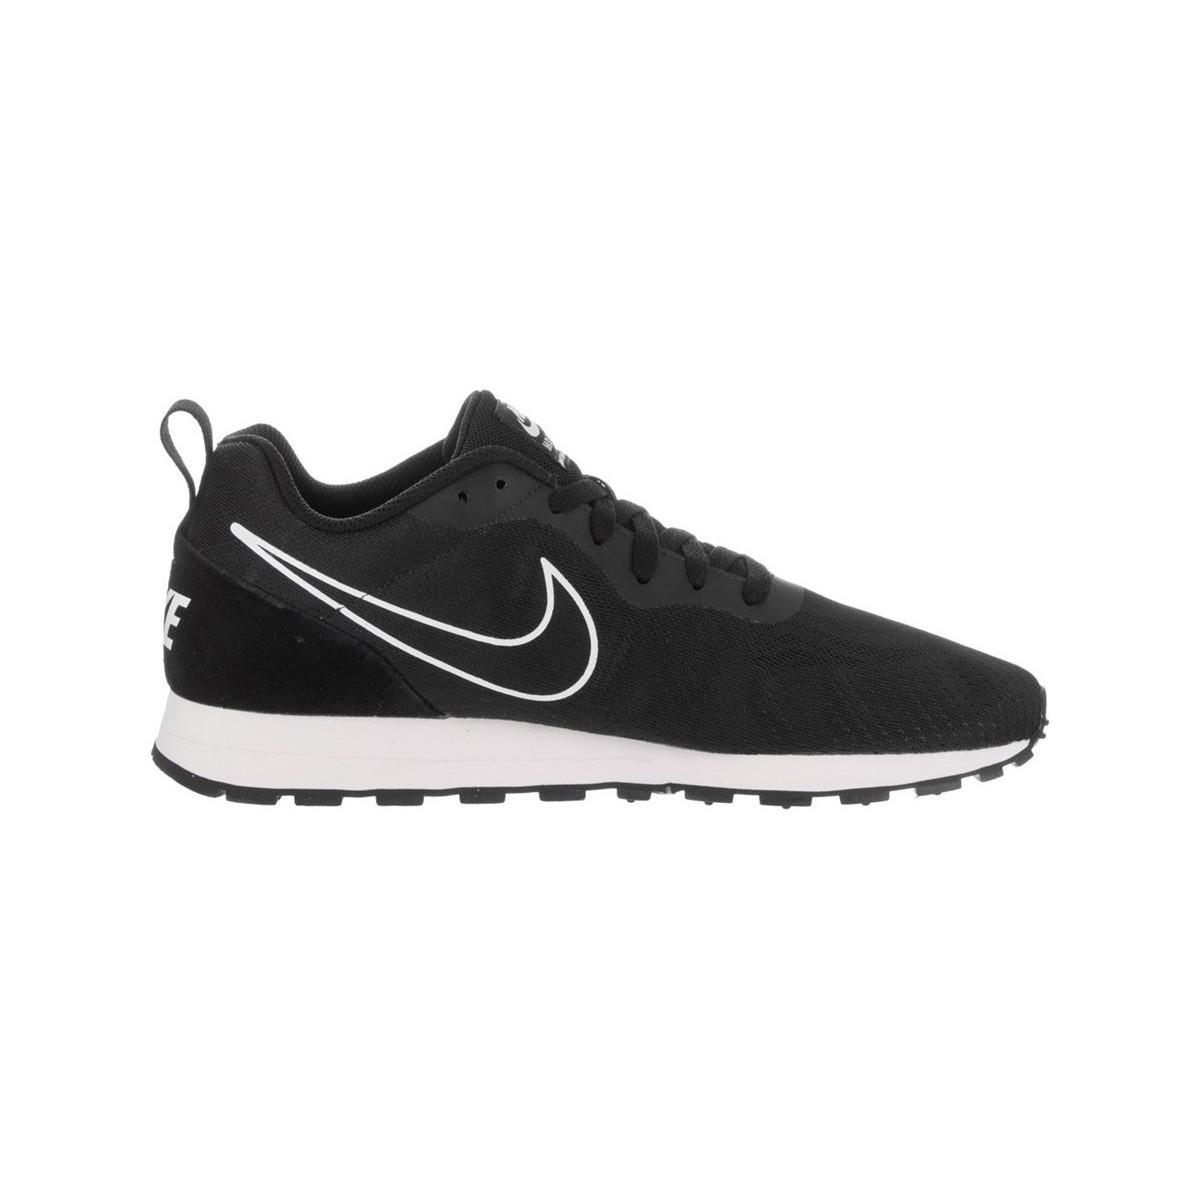 Nike Md Runner 2 Eng Mesh Men s Shoes (trainers) In Black in Black ... 5032257c14c77